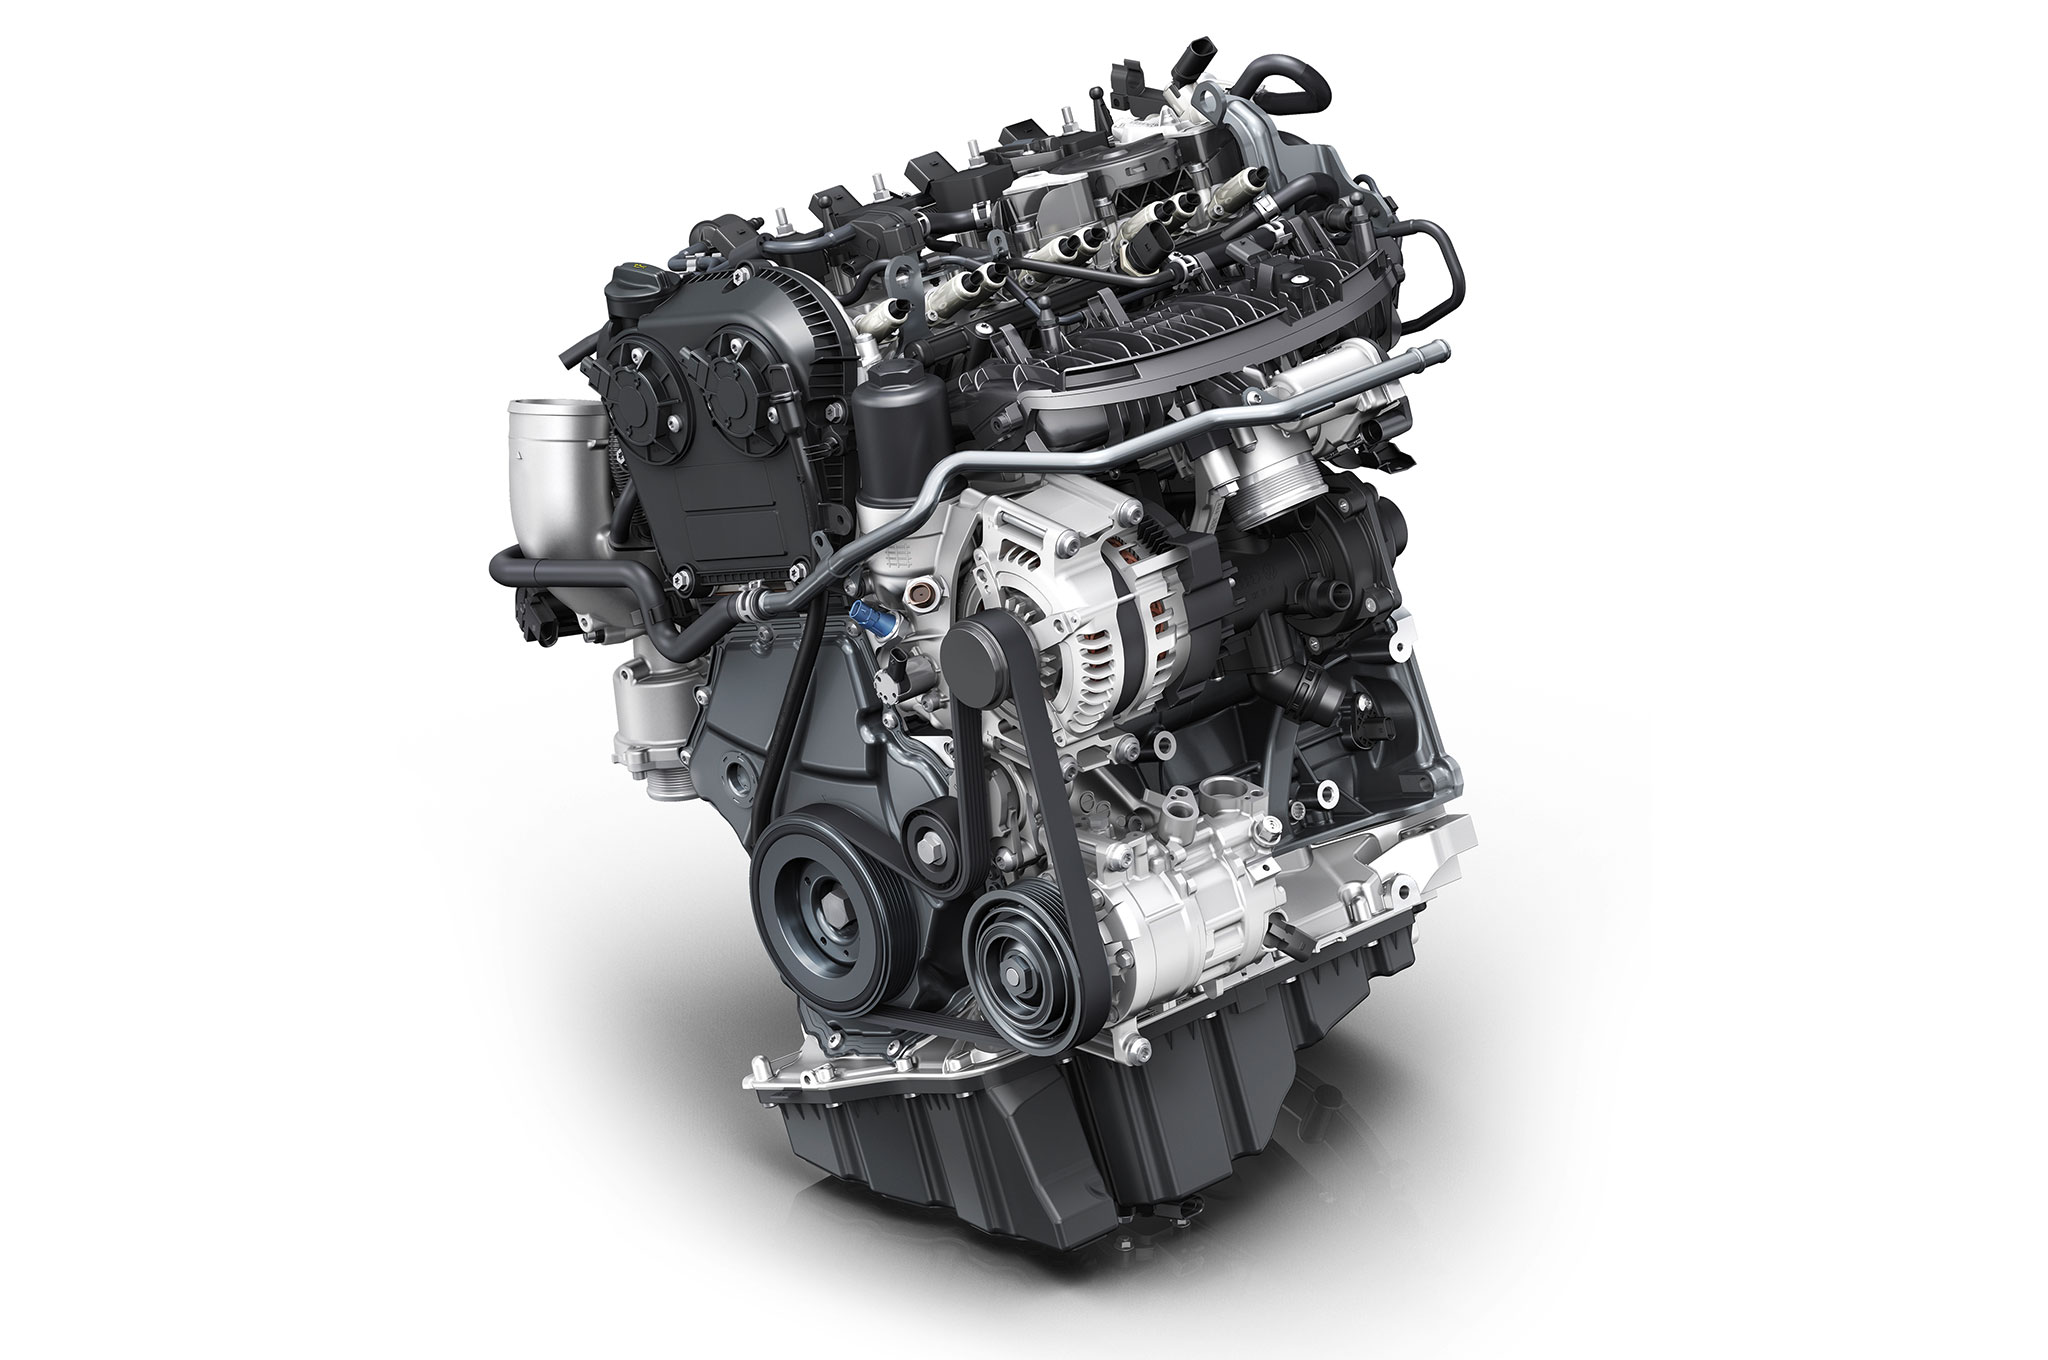 audi engine a4 liter engines four combustion turbo advanced generation system cylinder hp jet ultra its diesel gen gets motor